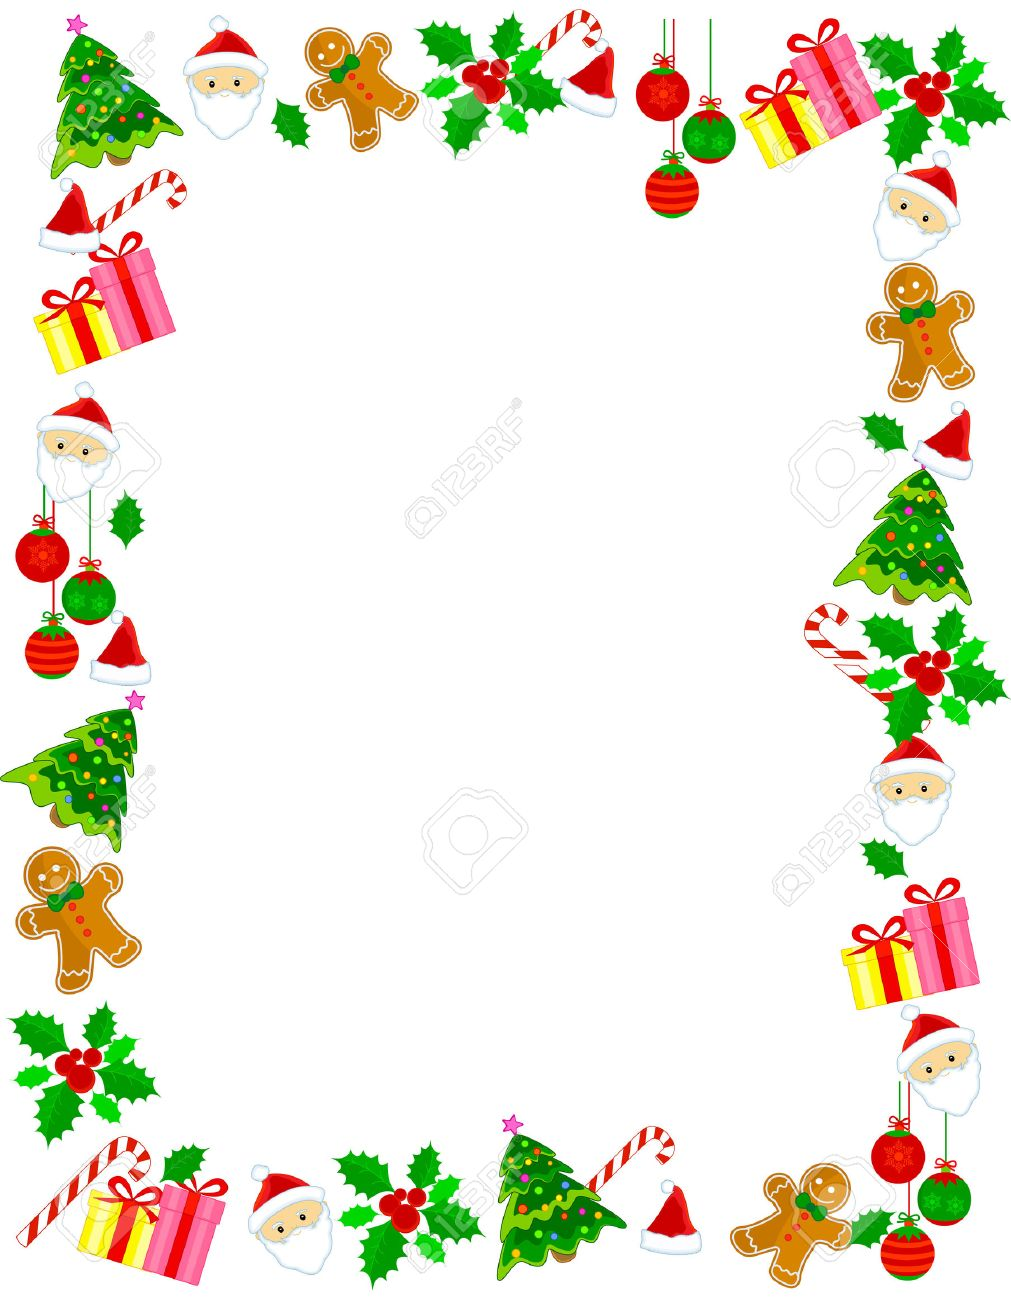 Christmas Frame.Colorful Christmas Frame Border With Different Clip Arts